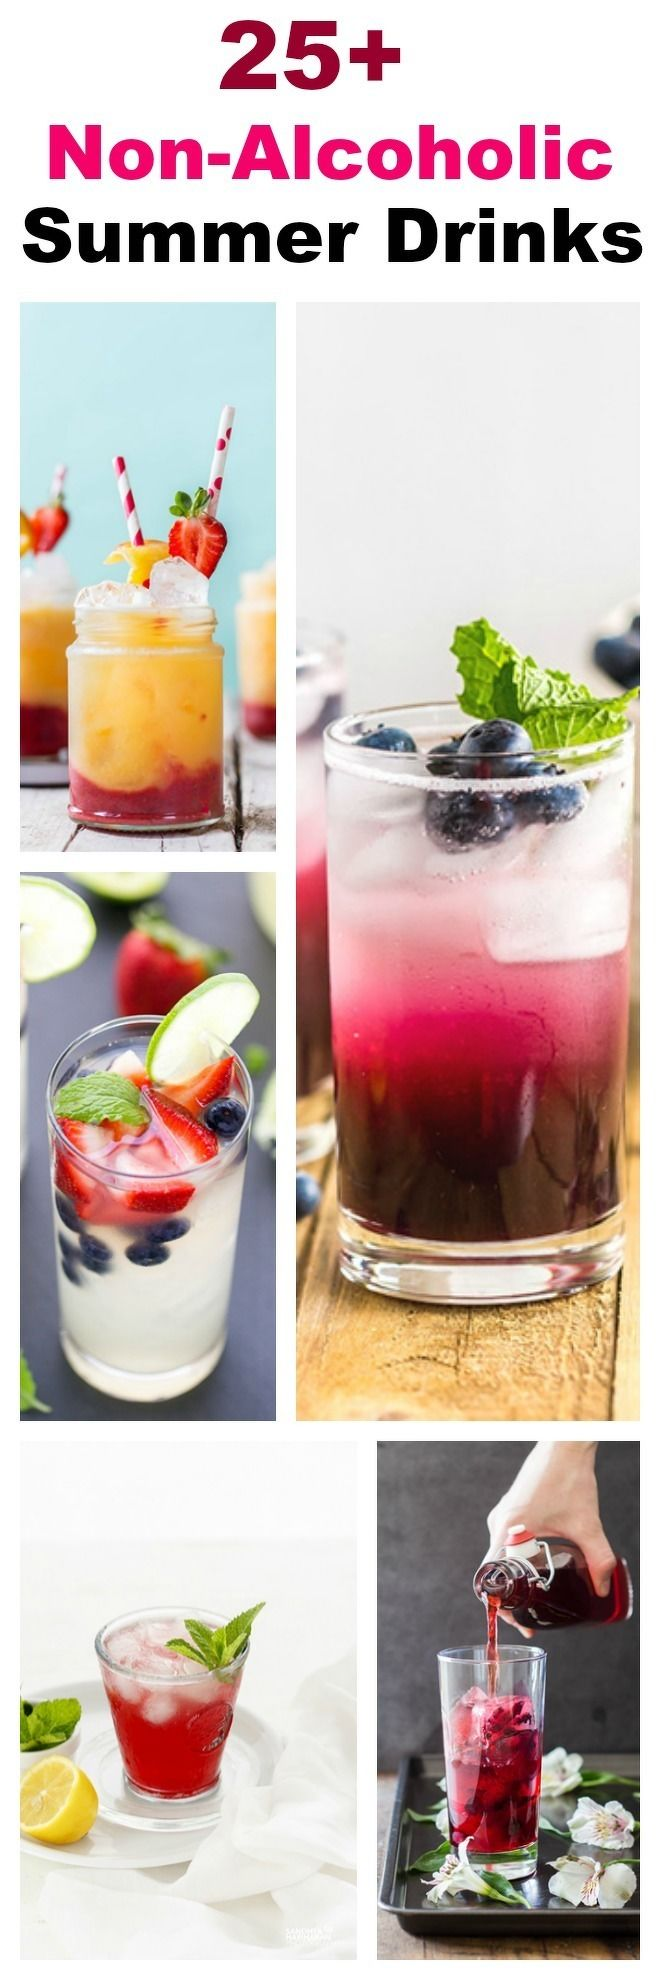 Non-Alcoholic Summer Drinks Collage-nocwm